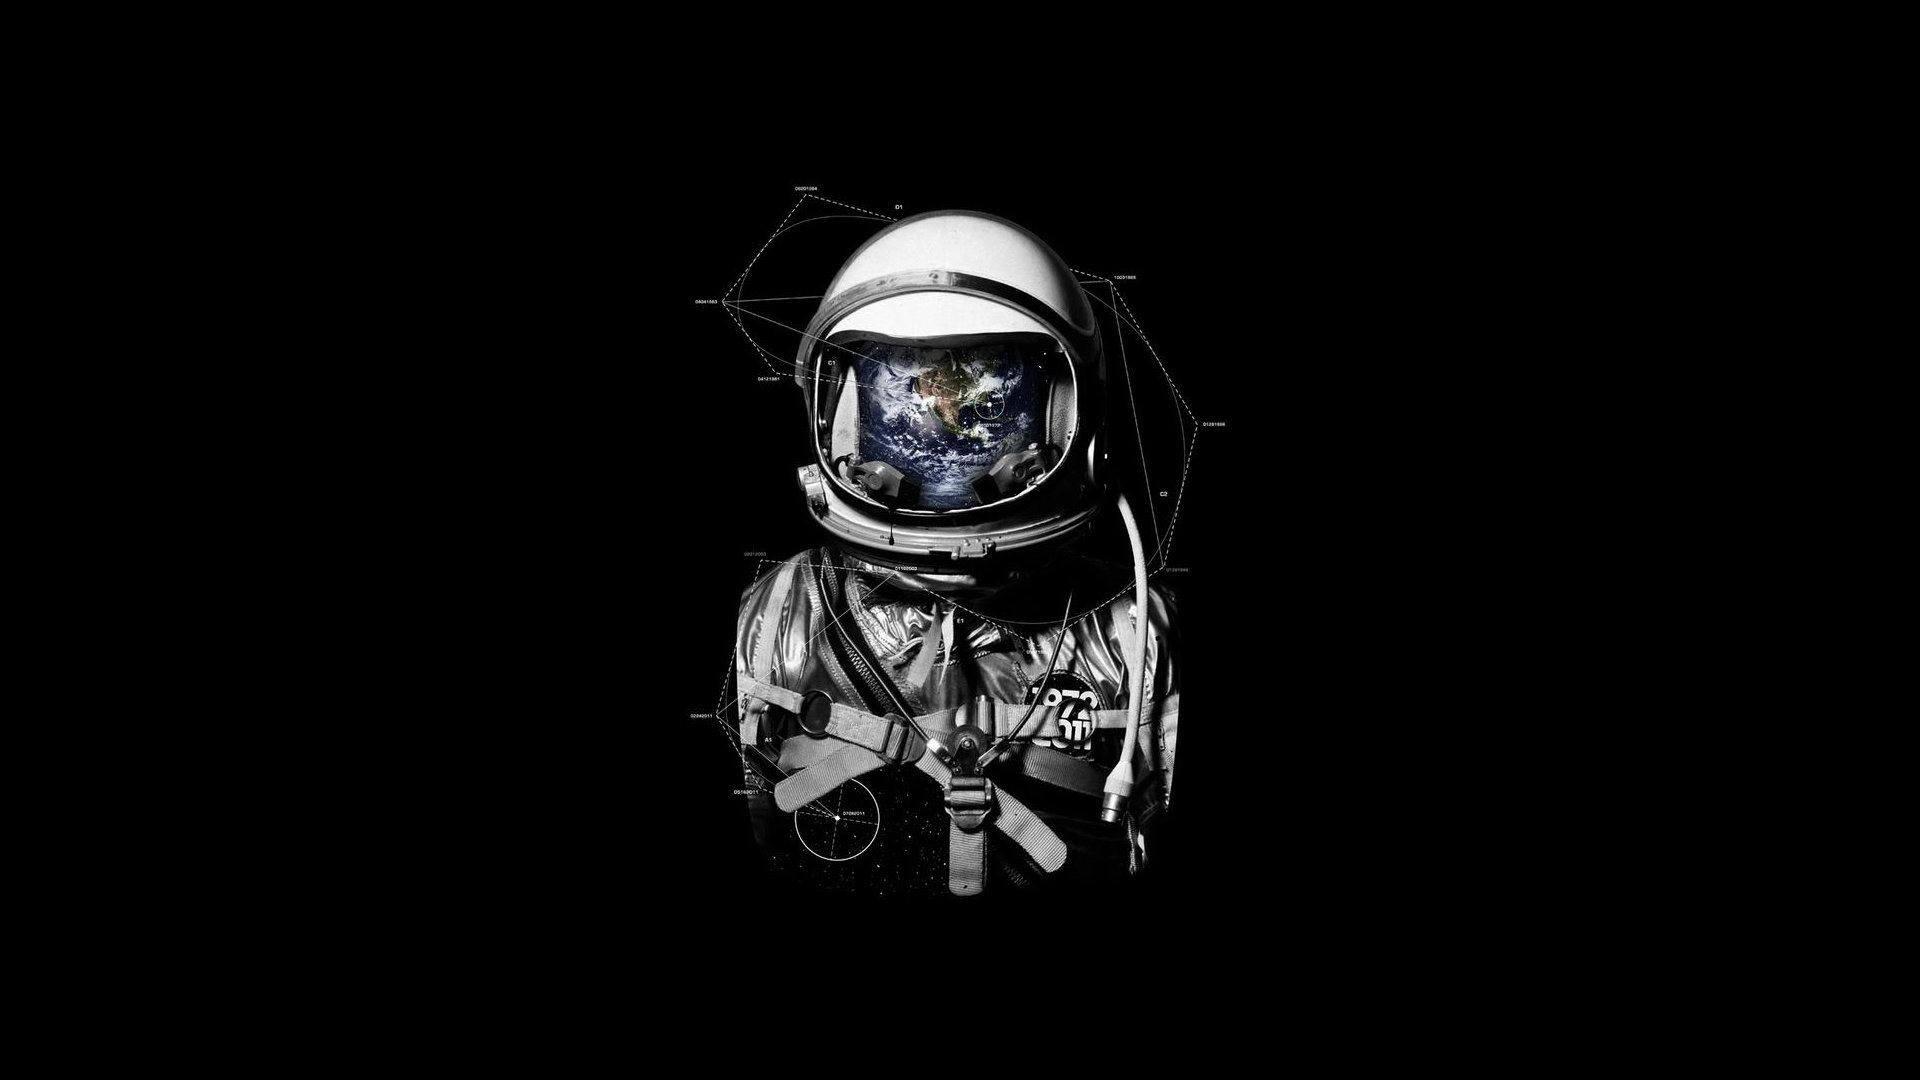 Free Astronaut high quality wallpaper ID:101449 for full hd computer